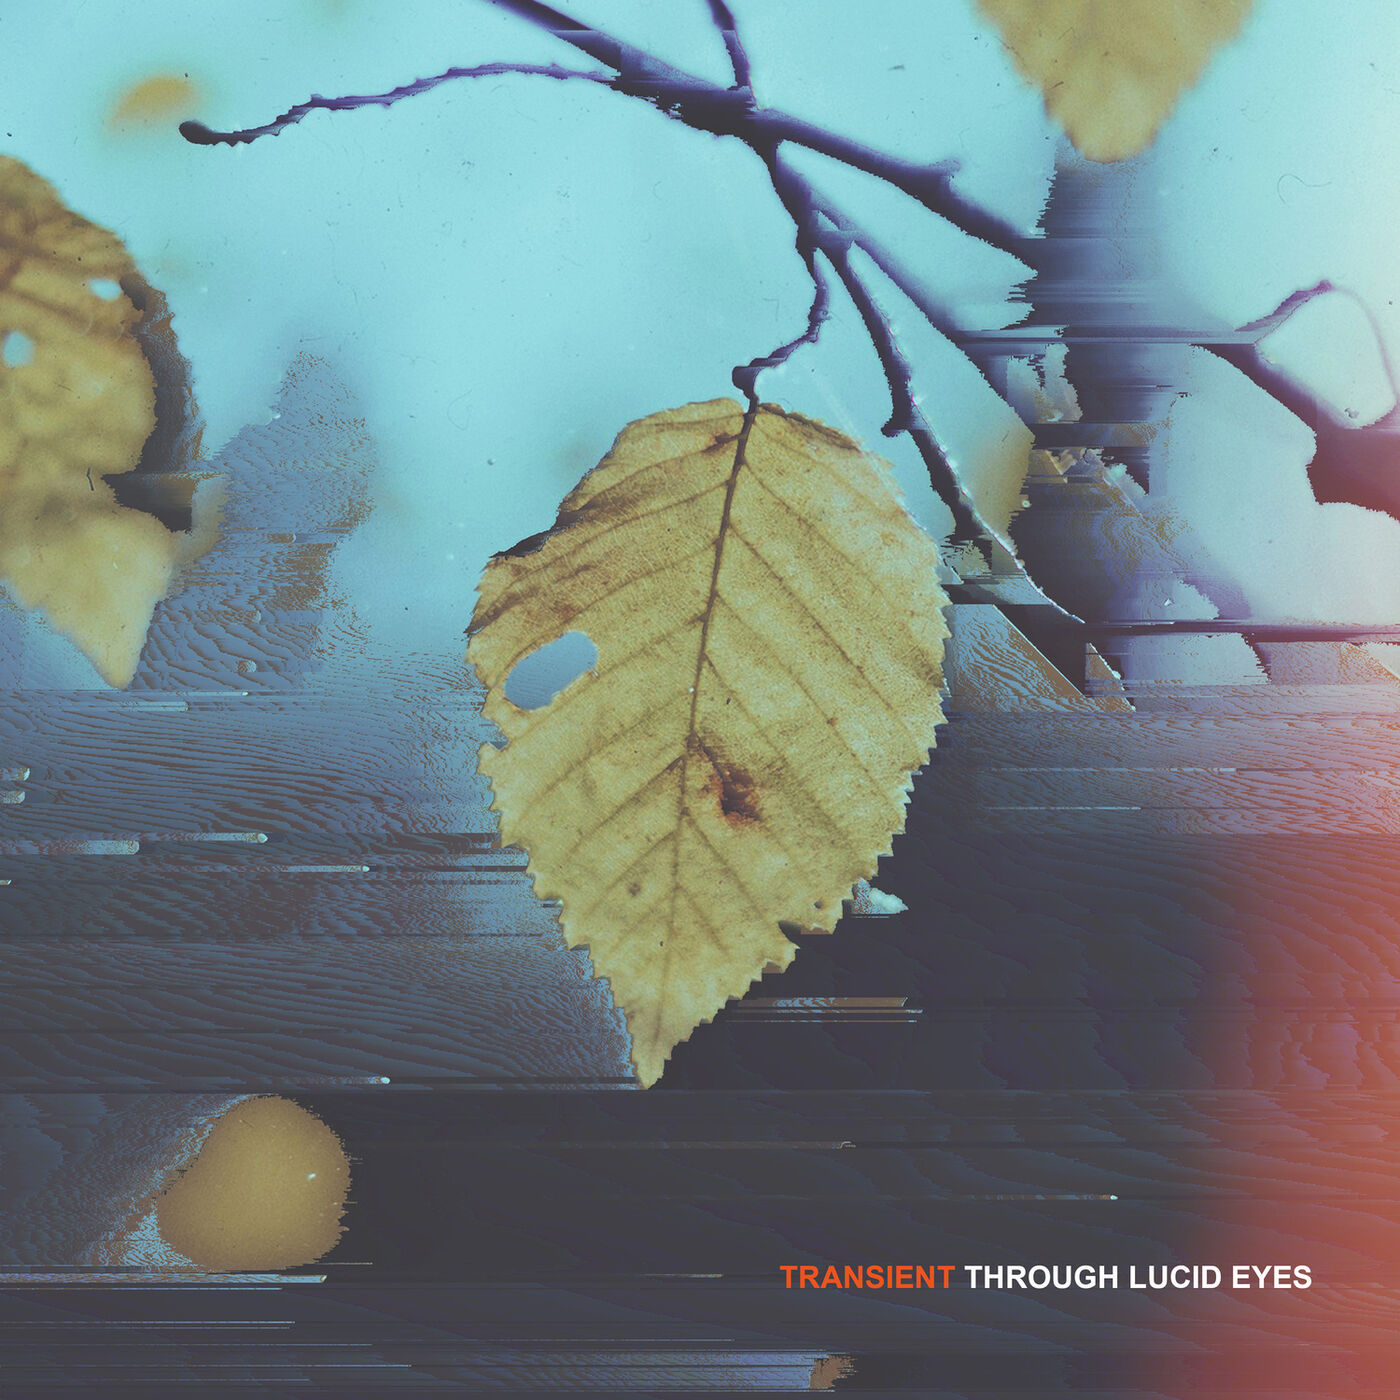 Through Lucid Eyes - Fleeting Moments [single] (2016)